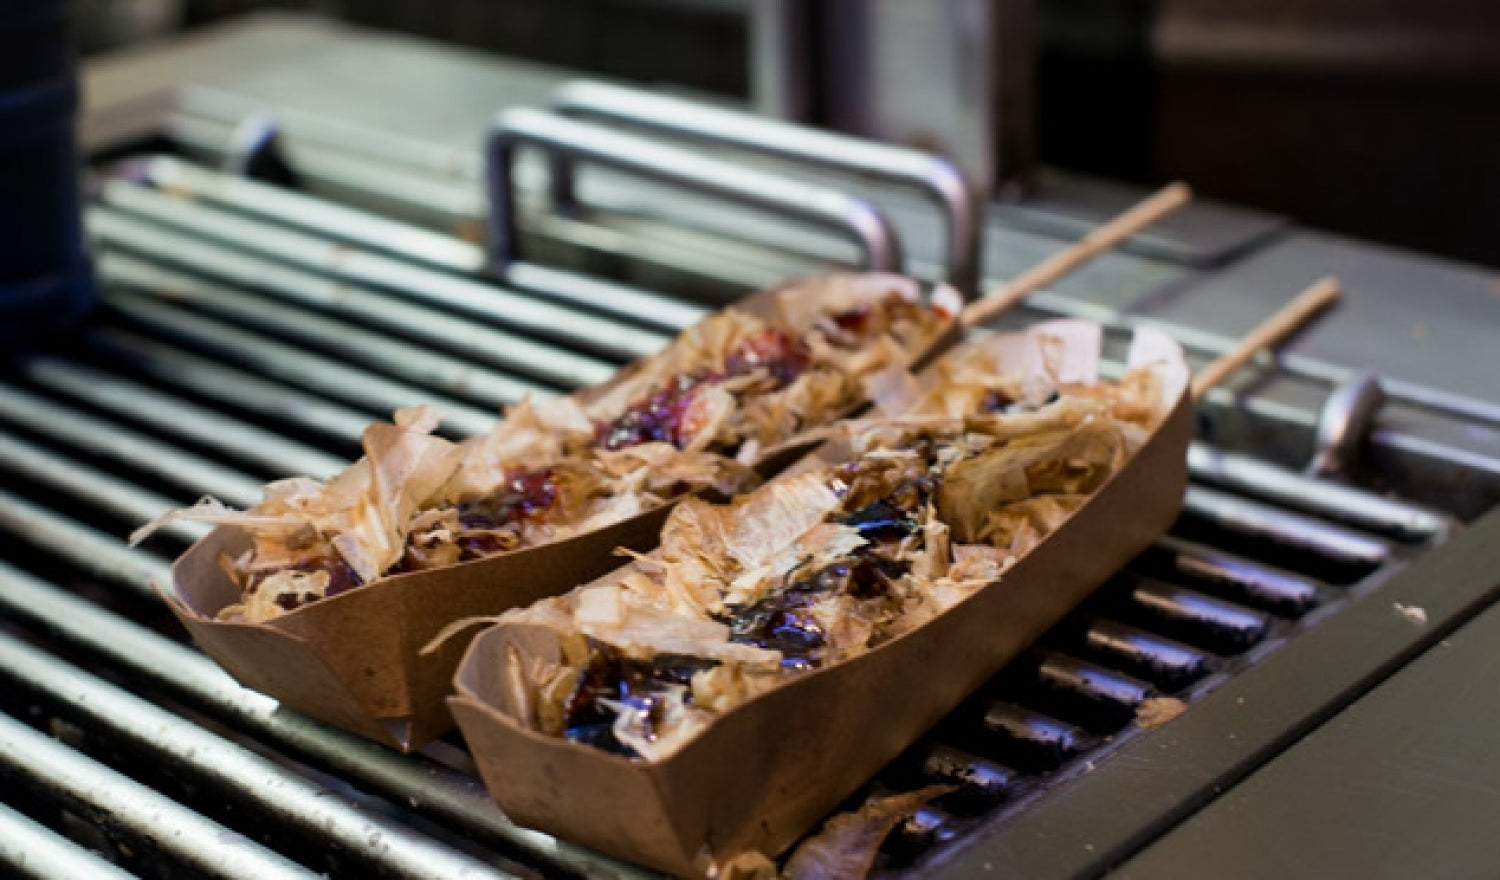 Korean Street Food To Try At Home: Octopus On A Stick